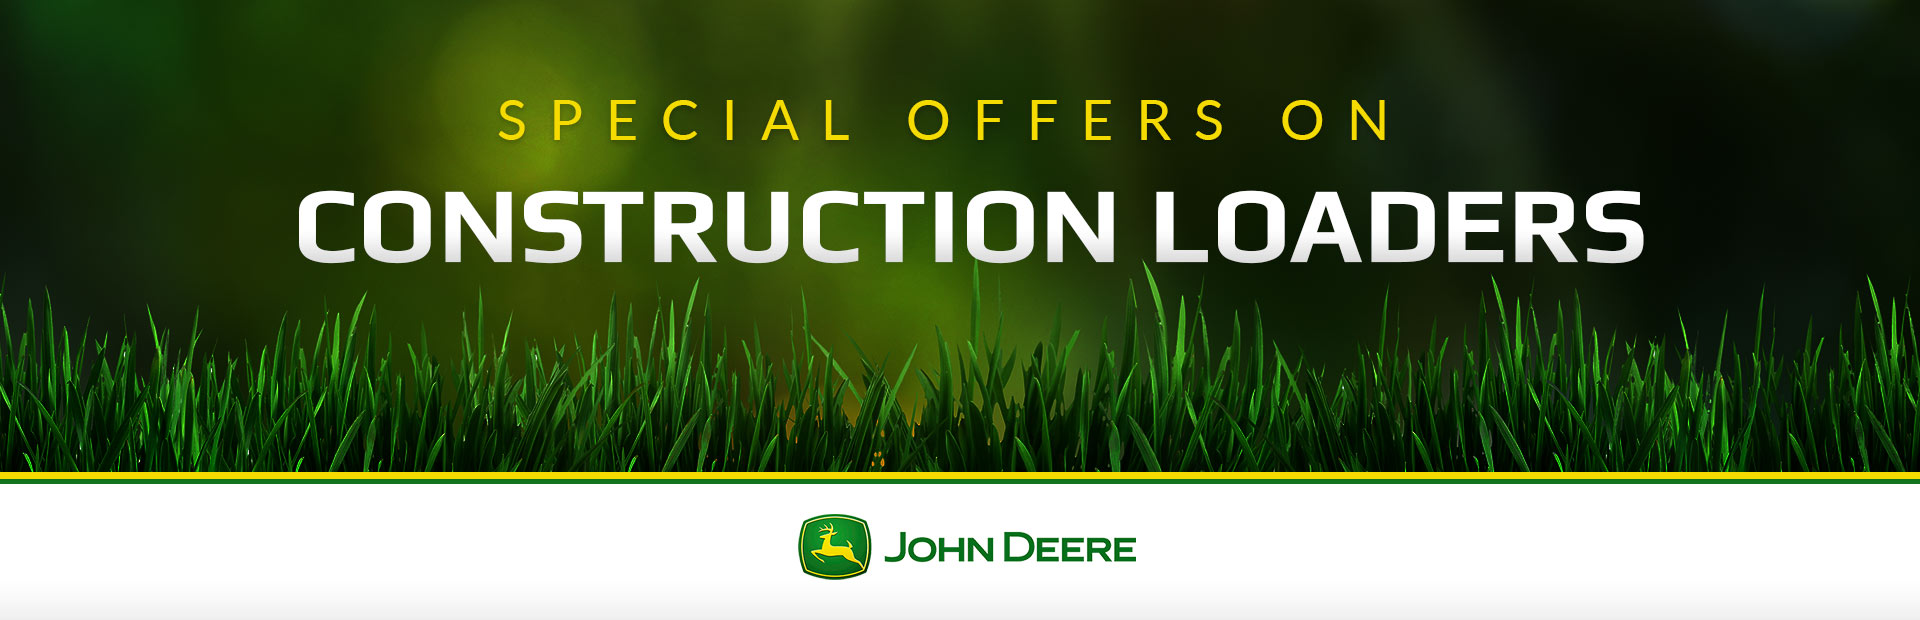 John Deere: Construction Loaders